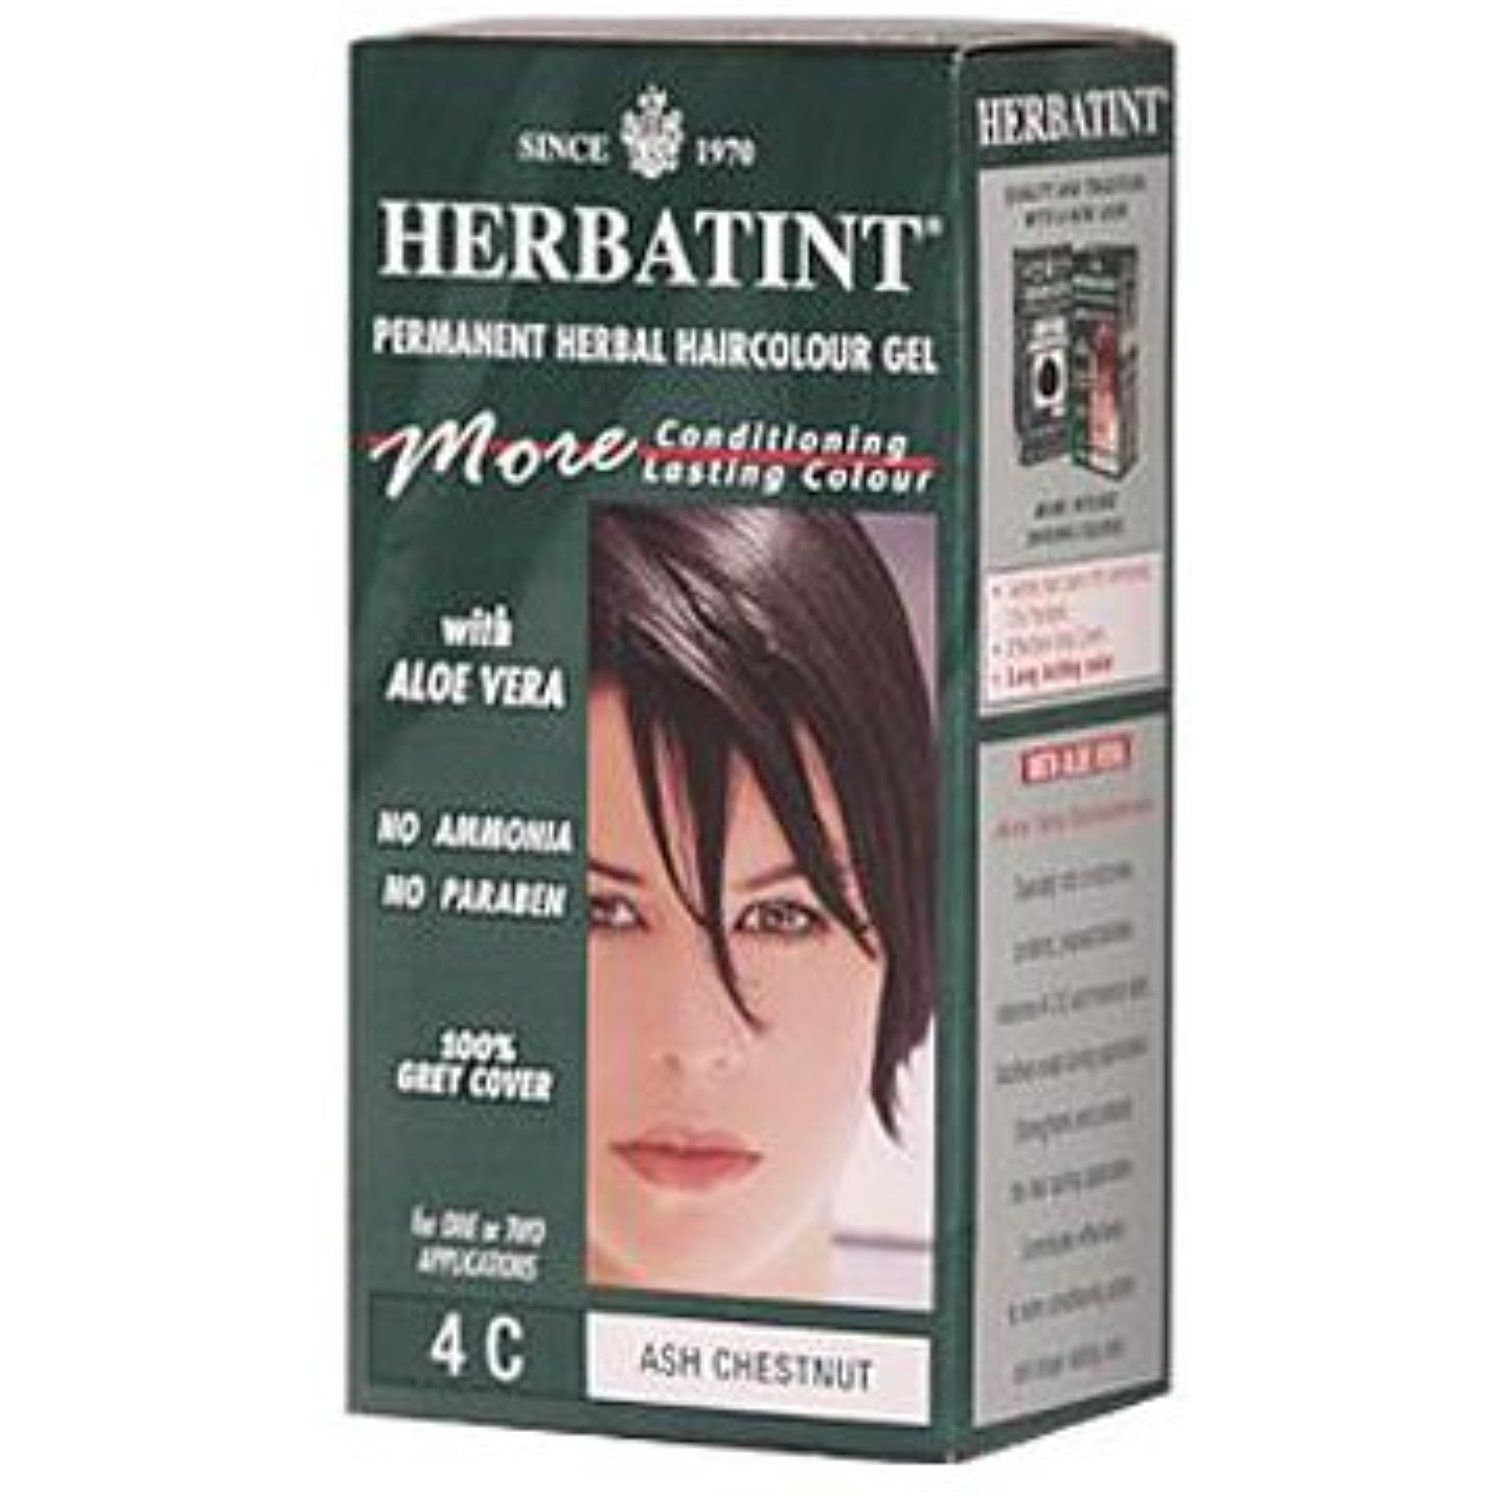 Herbatint Hr Color c Ash Chestnt ueueue Want to know more click on